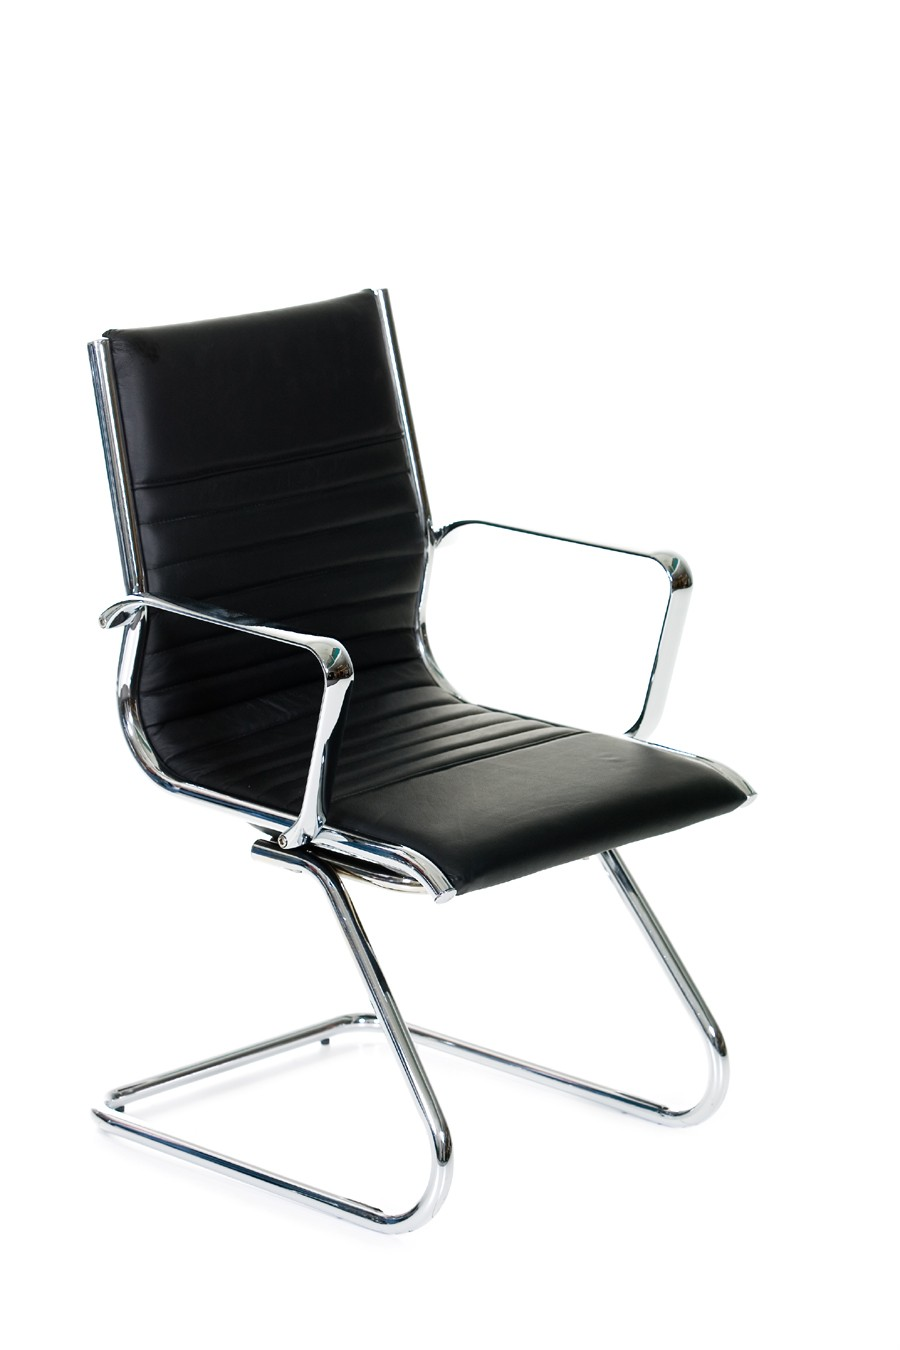 Eames Replica Boardroom Visitor Chair Chairs